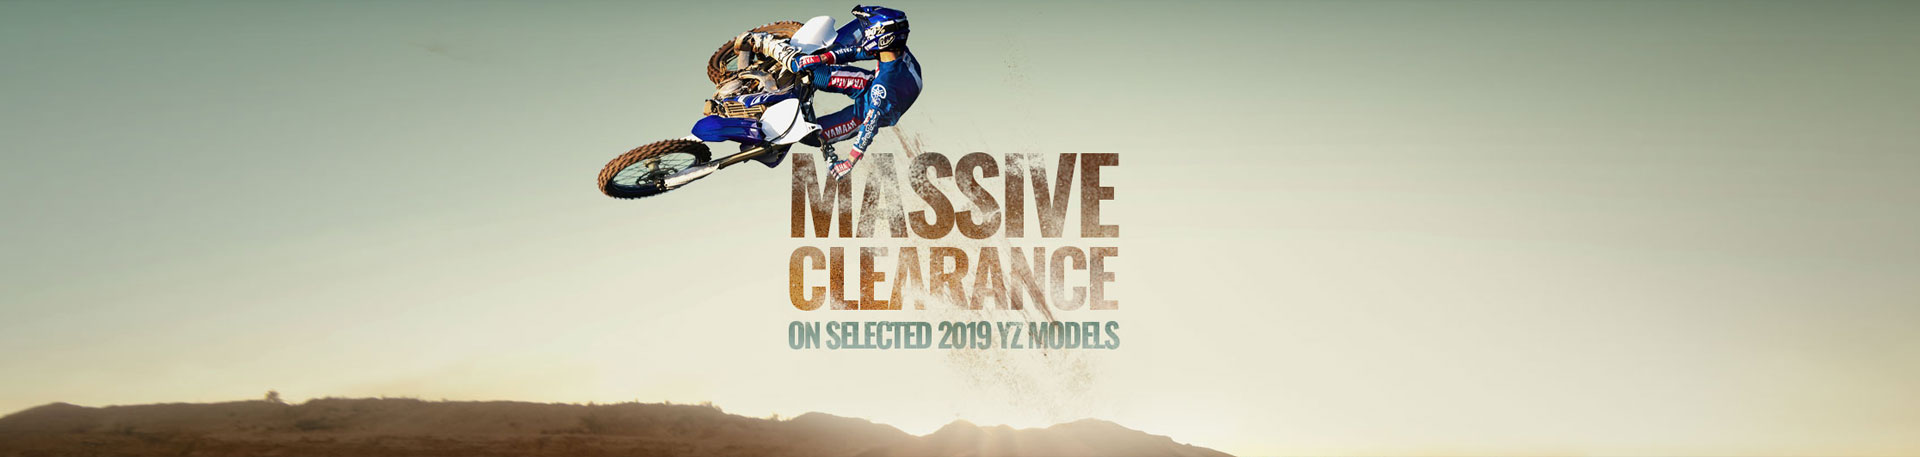 https://www.yamahas.nz/i/Images/promos/Offer_Banner_MassiveClearance.jpg